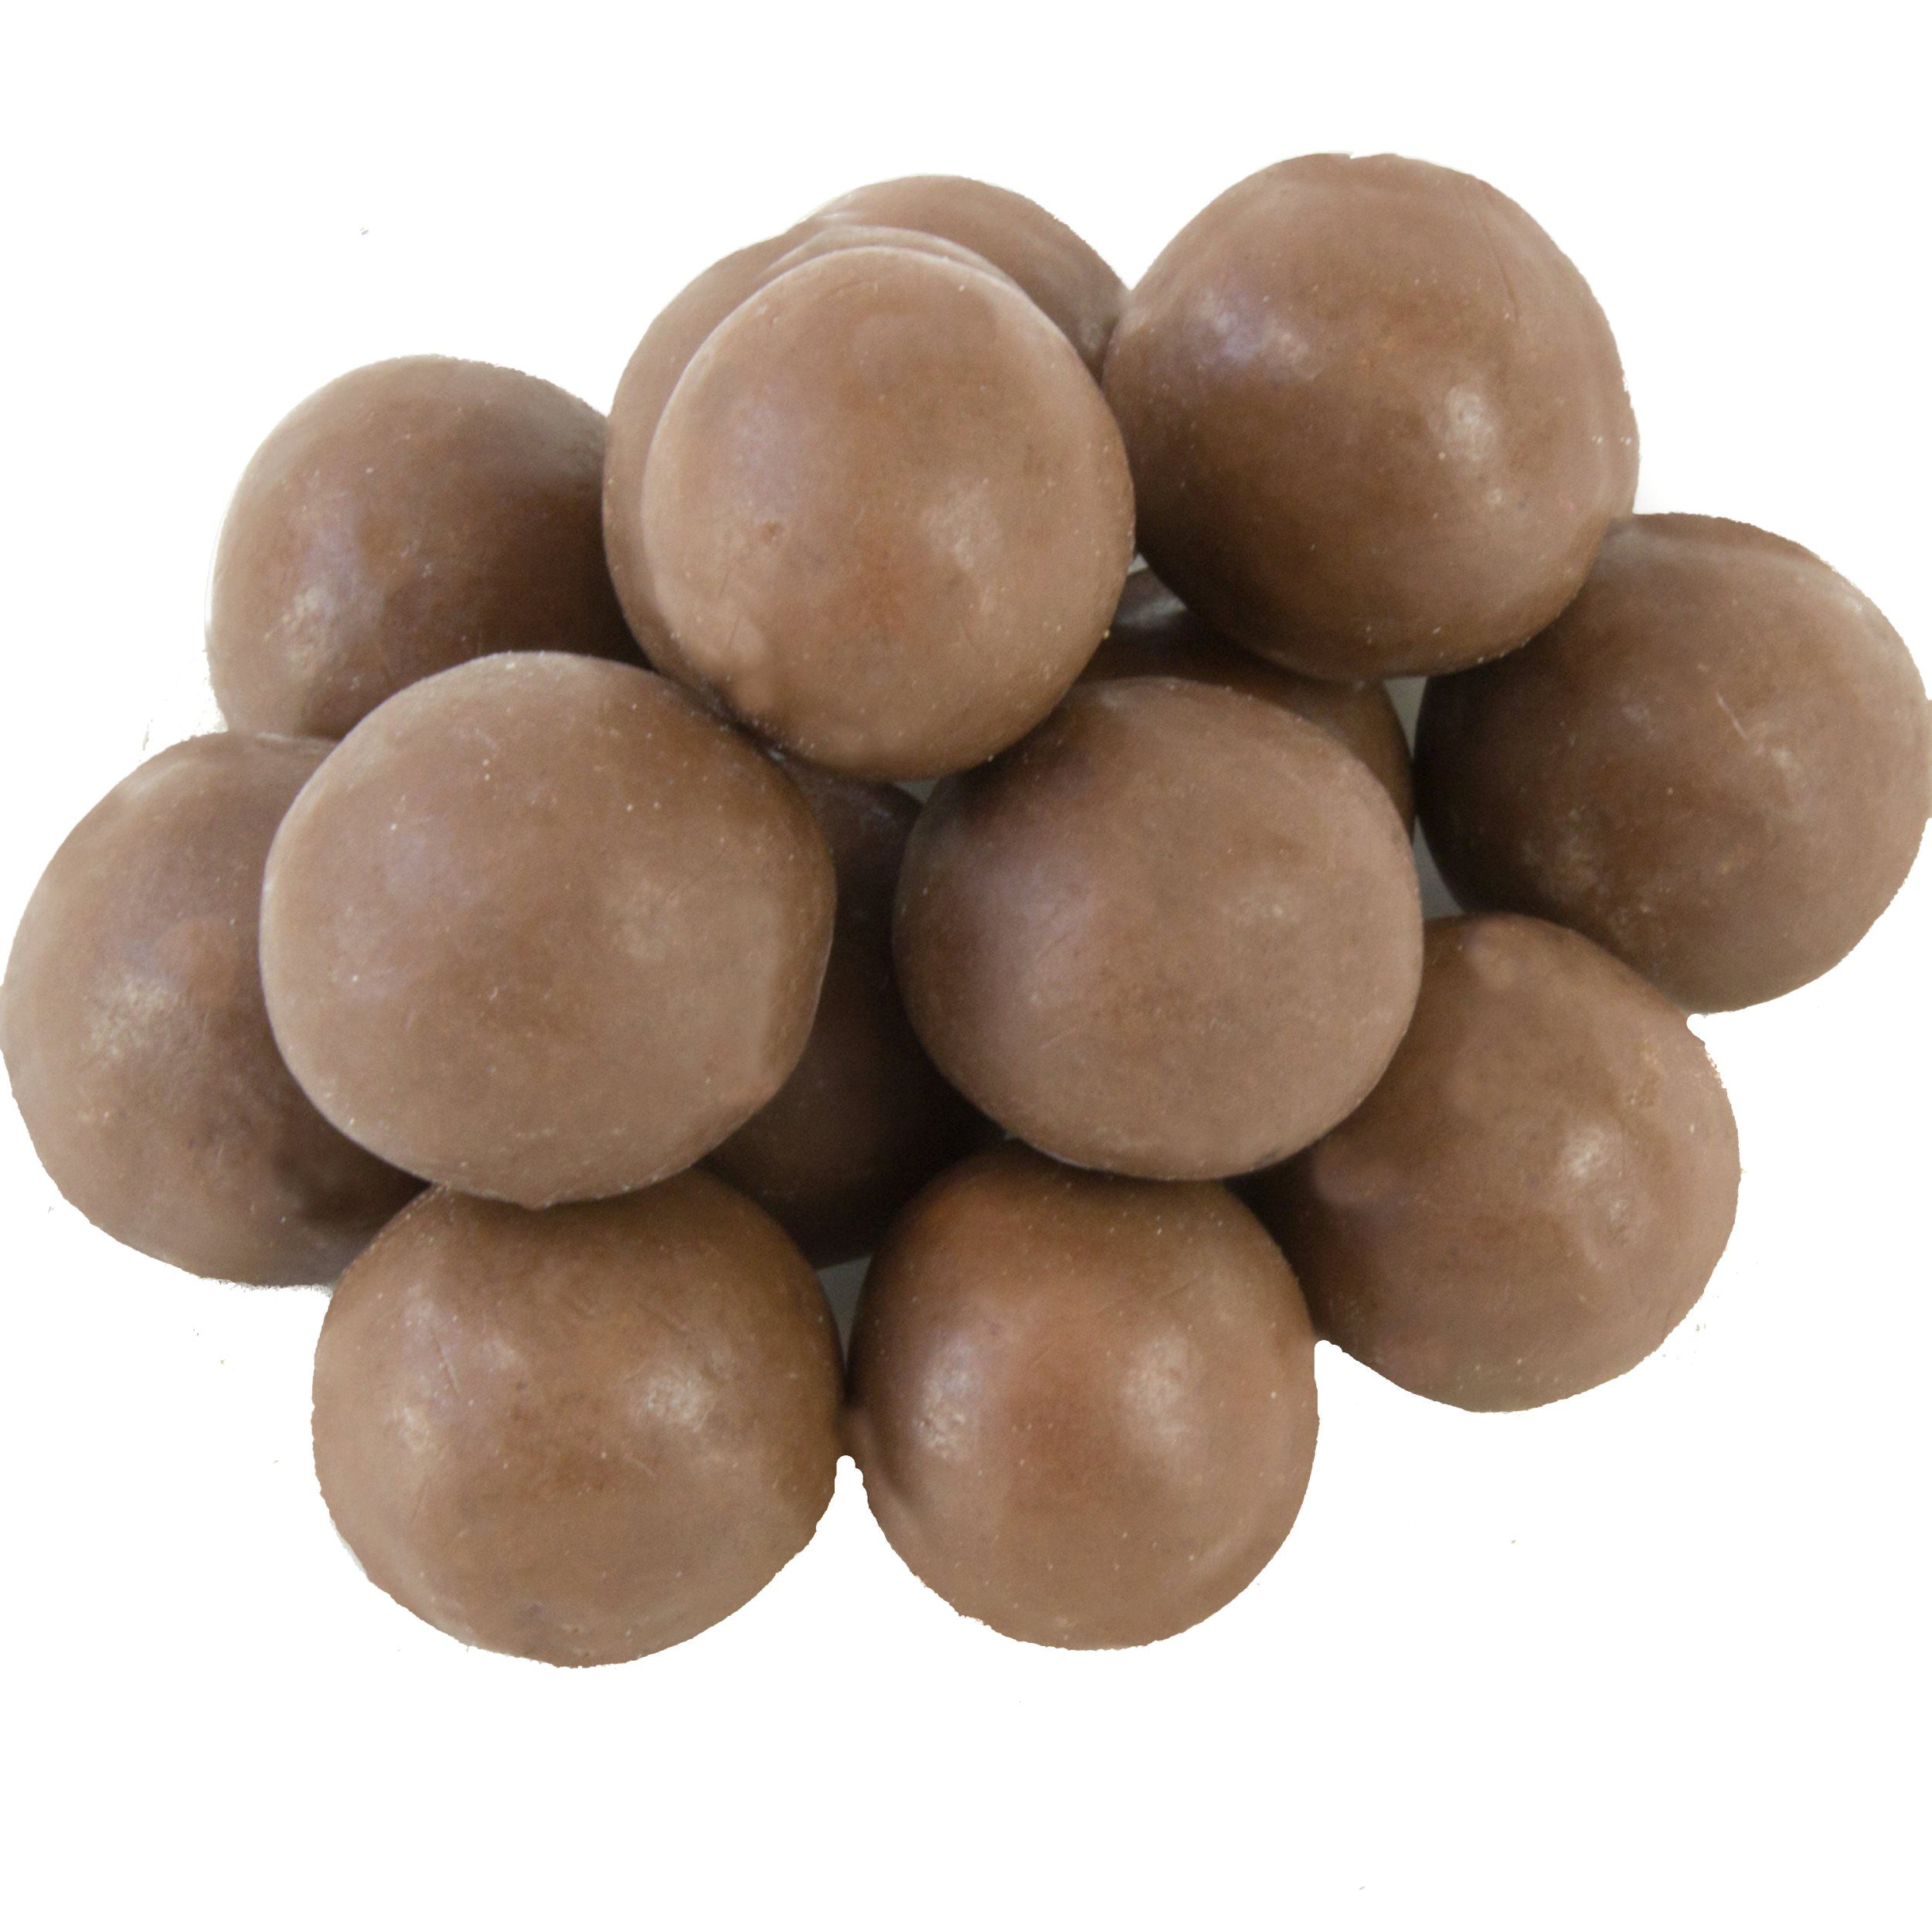 WHOLE WHOPPERS MALT BALLS